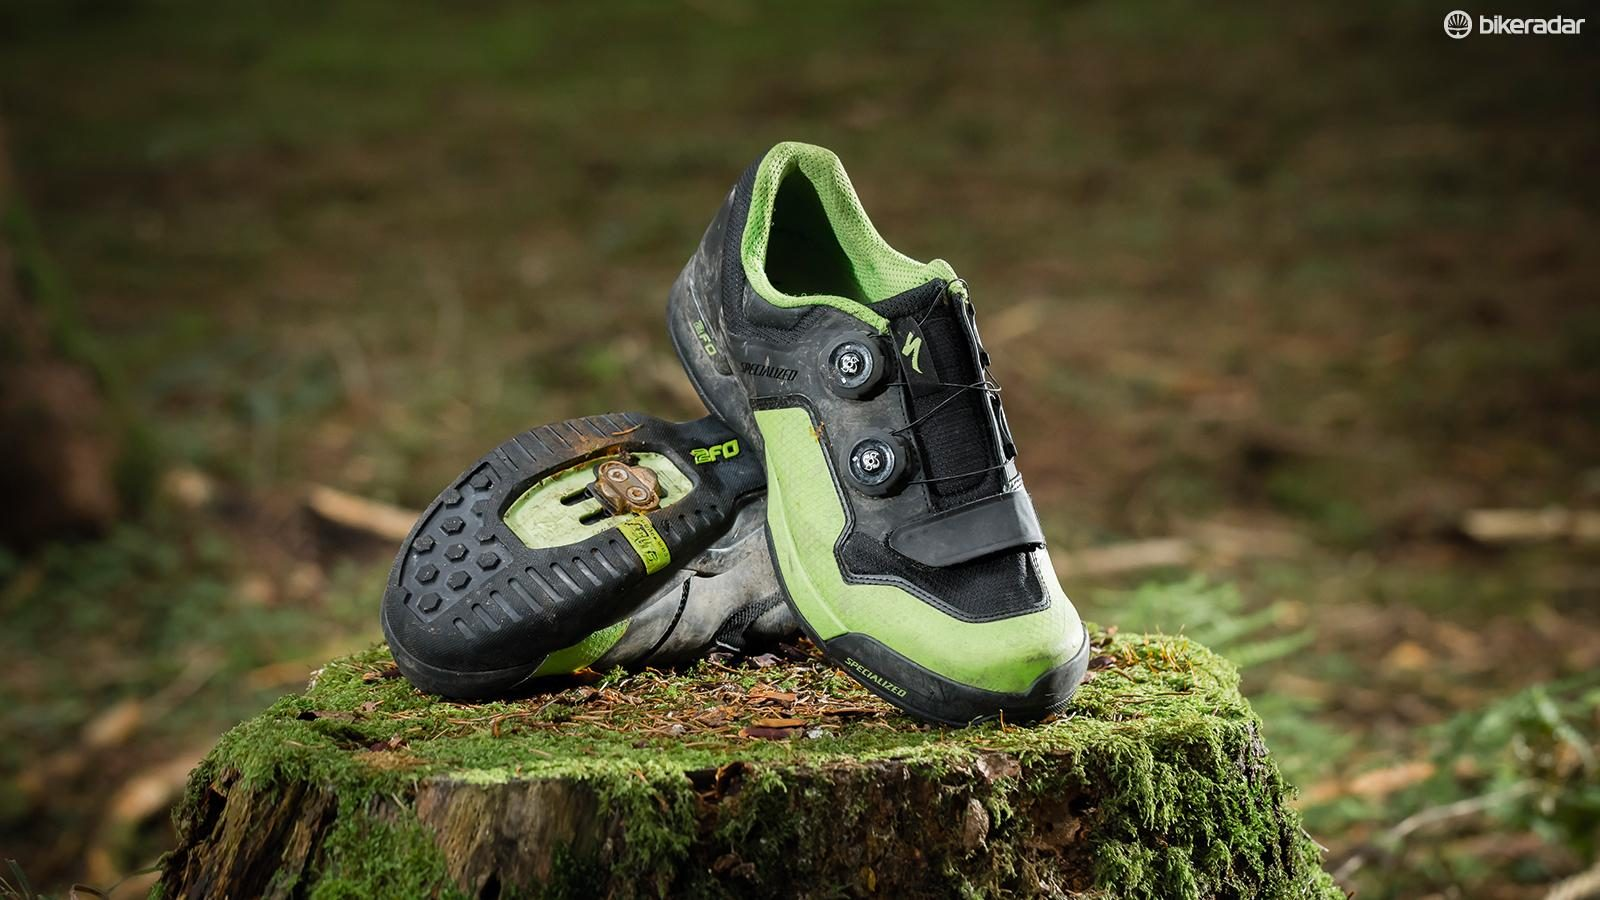 Specialized 2FO ClipLite shoes review